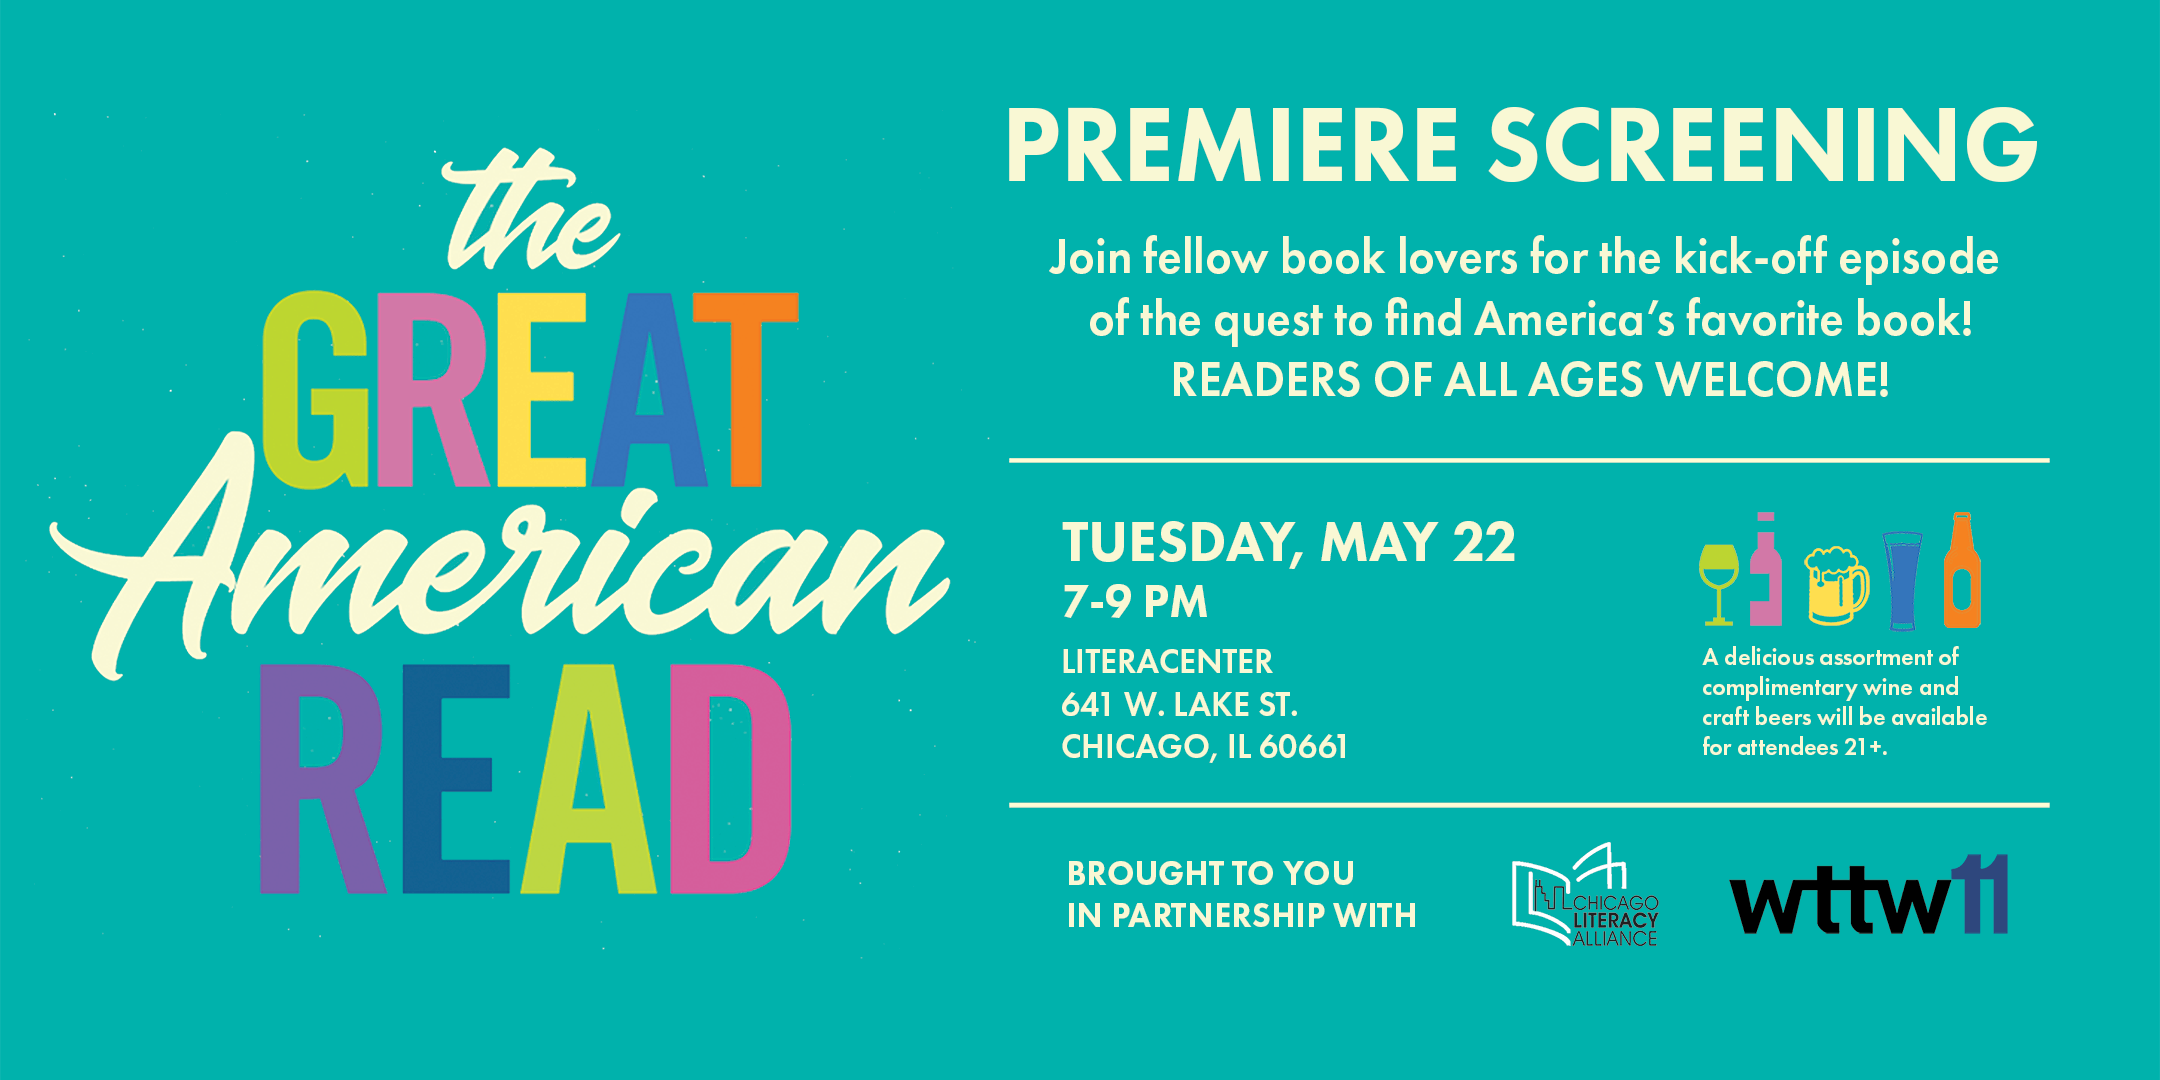 The Great American Read Premiere: A Free Scre